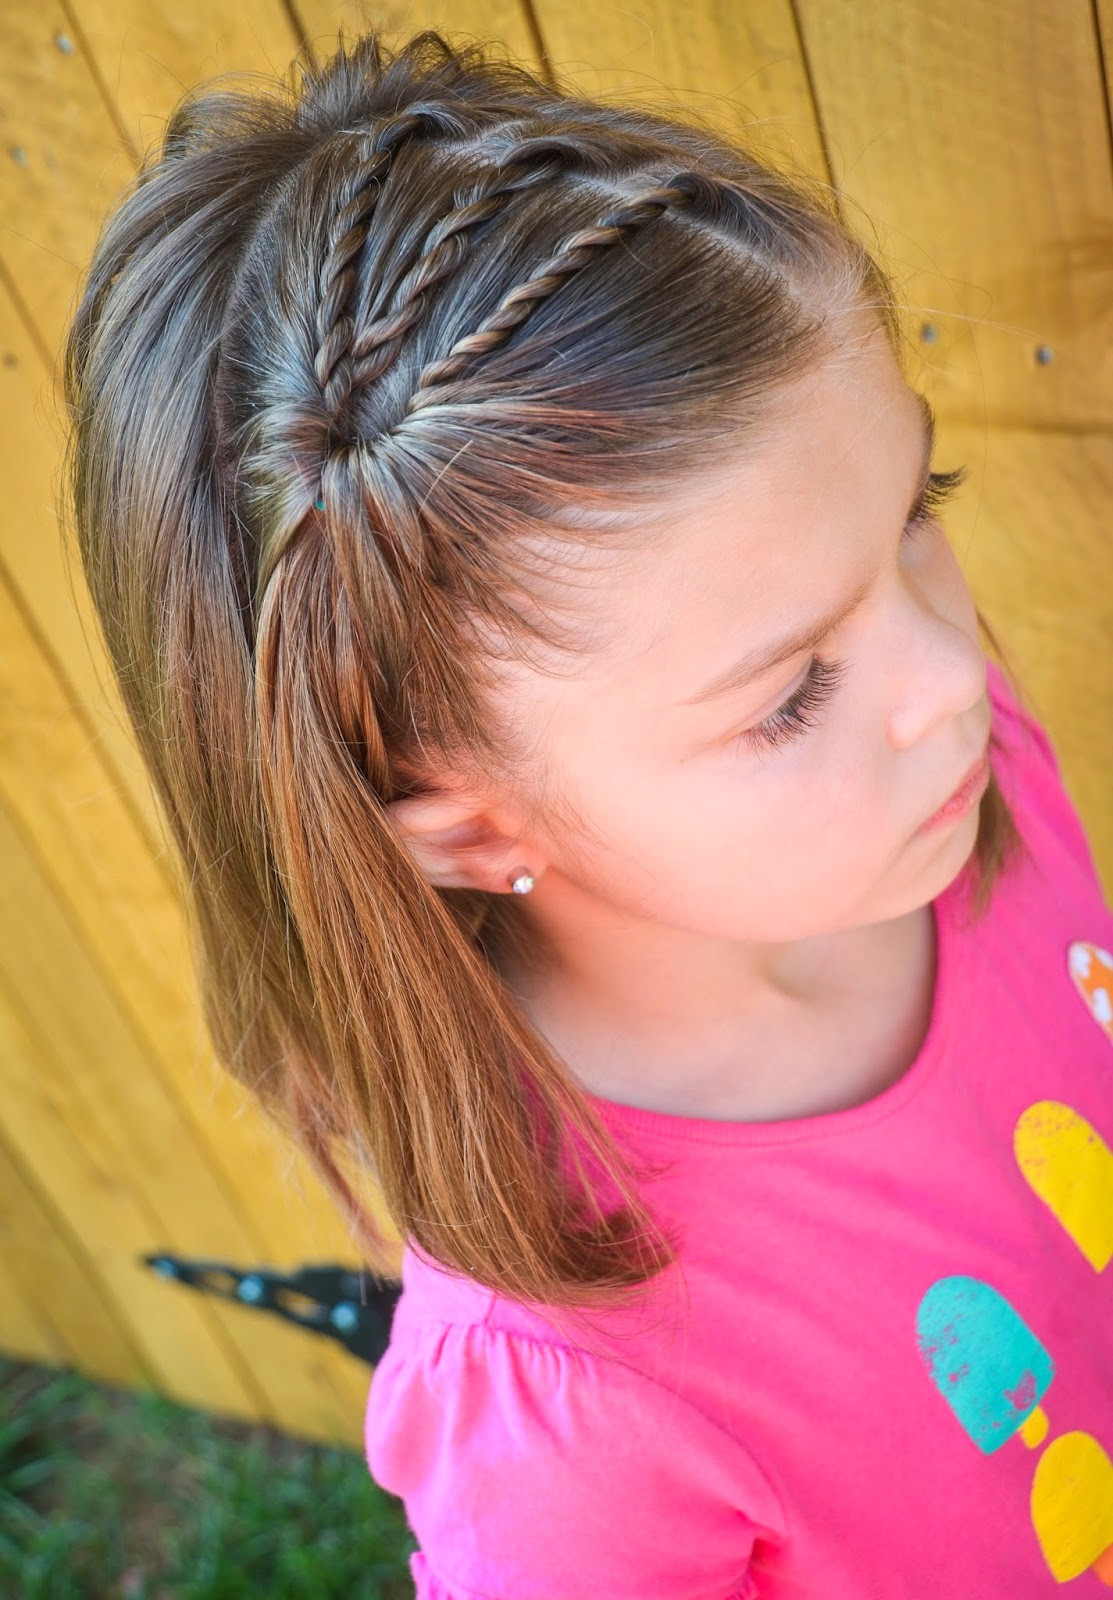 Best ideas about Girls Hair Cut . Save or Pin 25 Little Girl Hairstyles you can do YOURSELF Now.